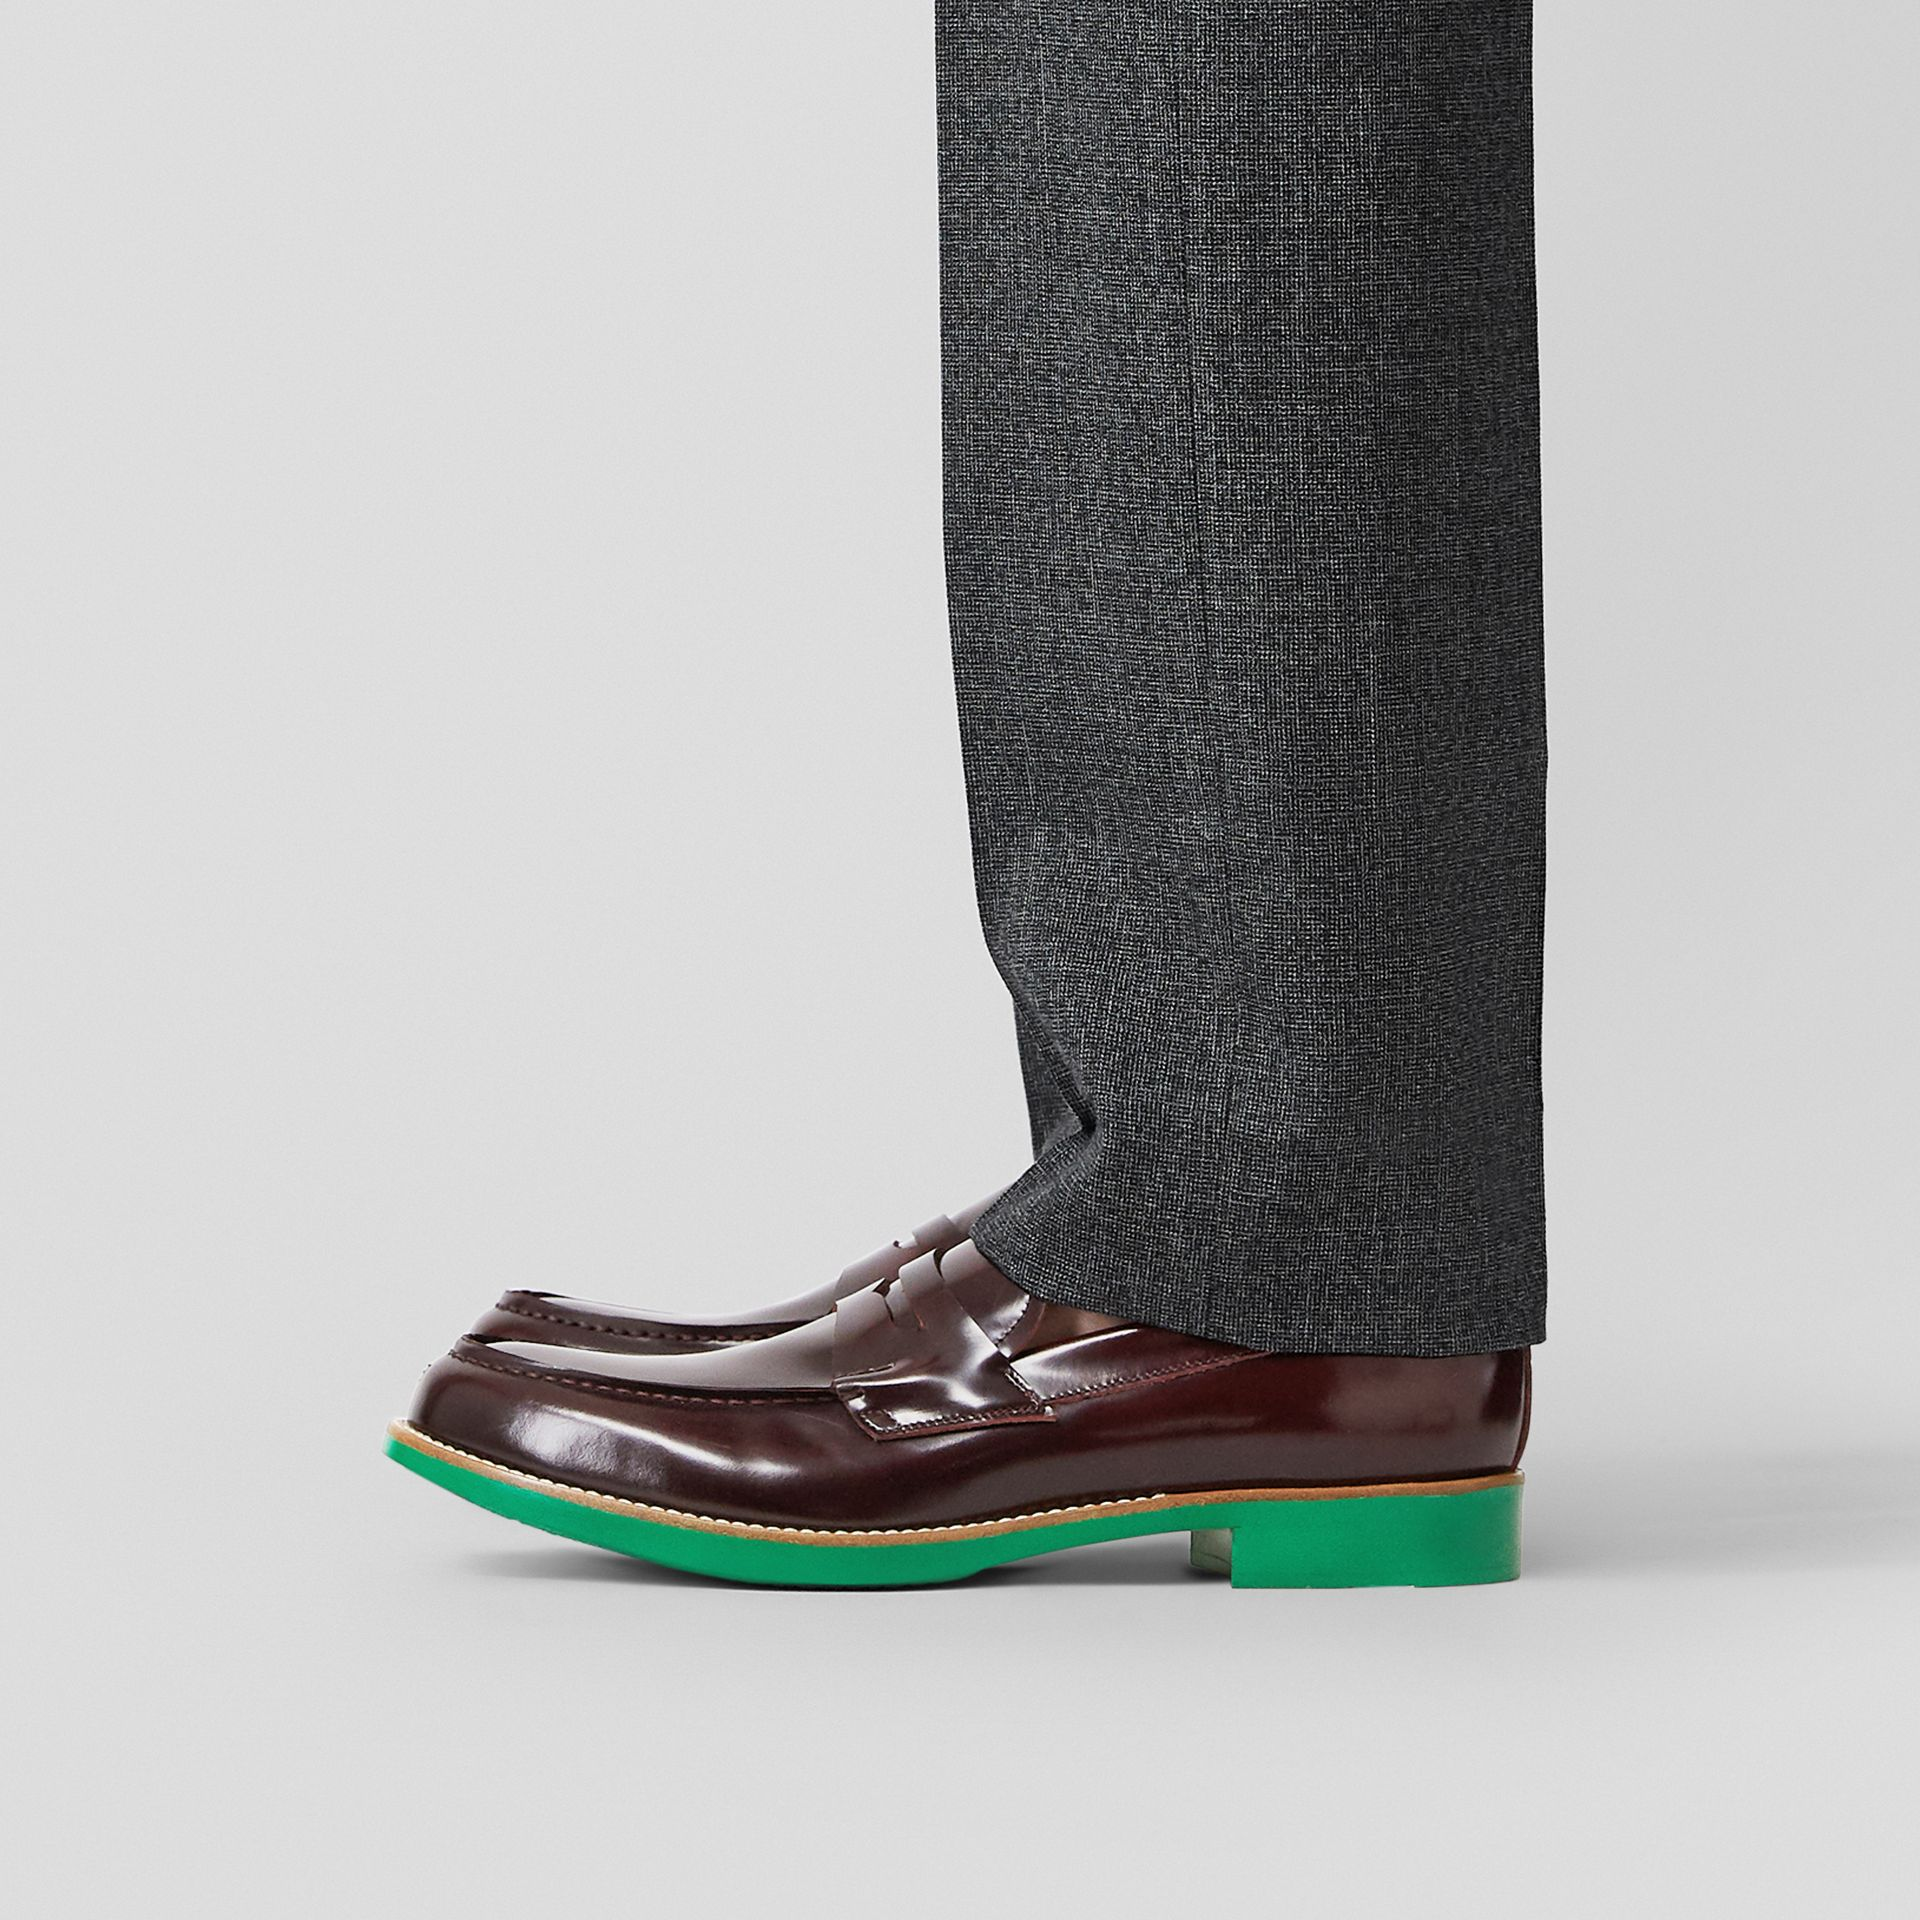 D-ring Detail Contrast Sole Leather Loafers in Bordeaux/green - Men | Burberry - gallery image 2